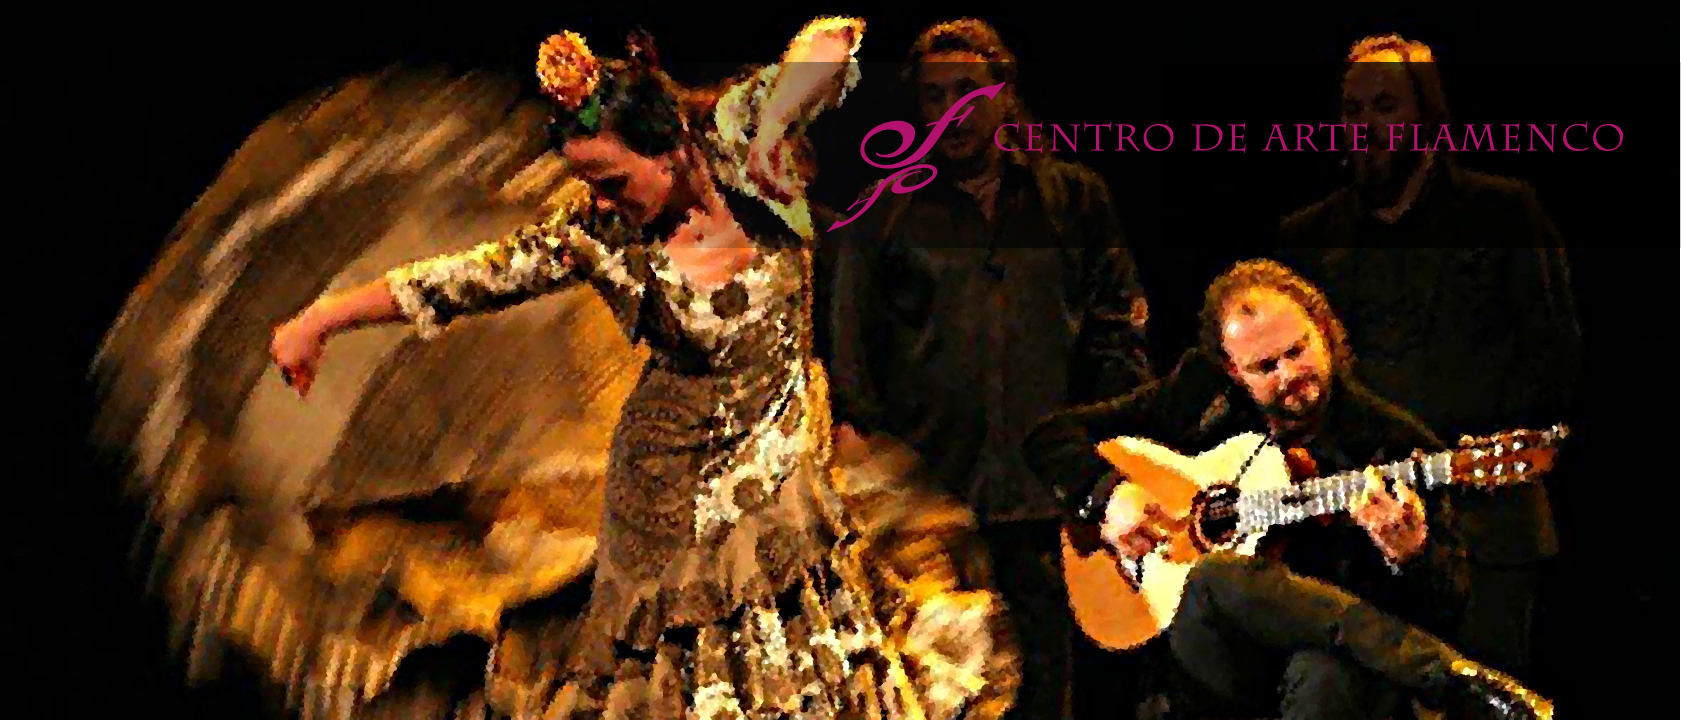 Flamencoworkshops mit Concha Jareño: April 2018